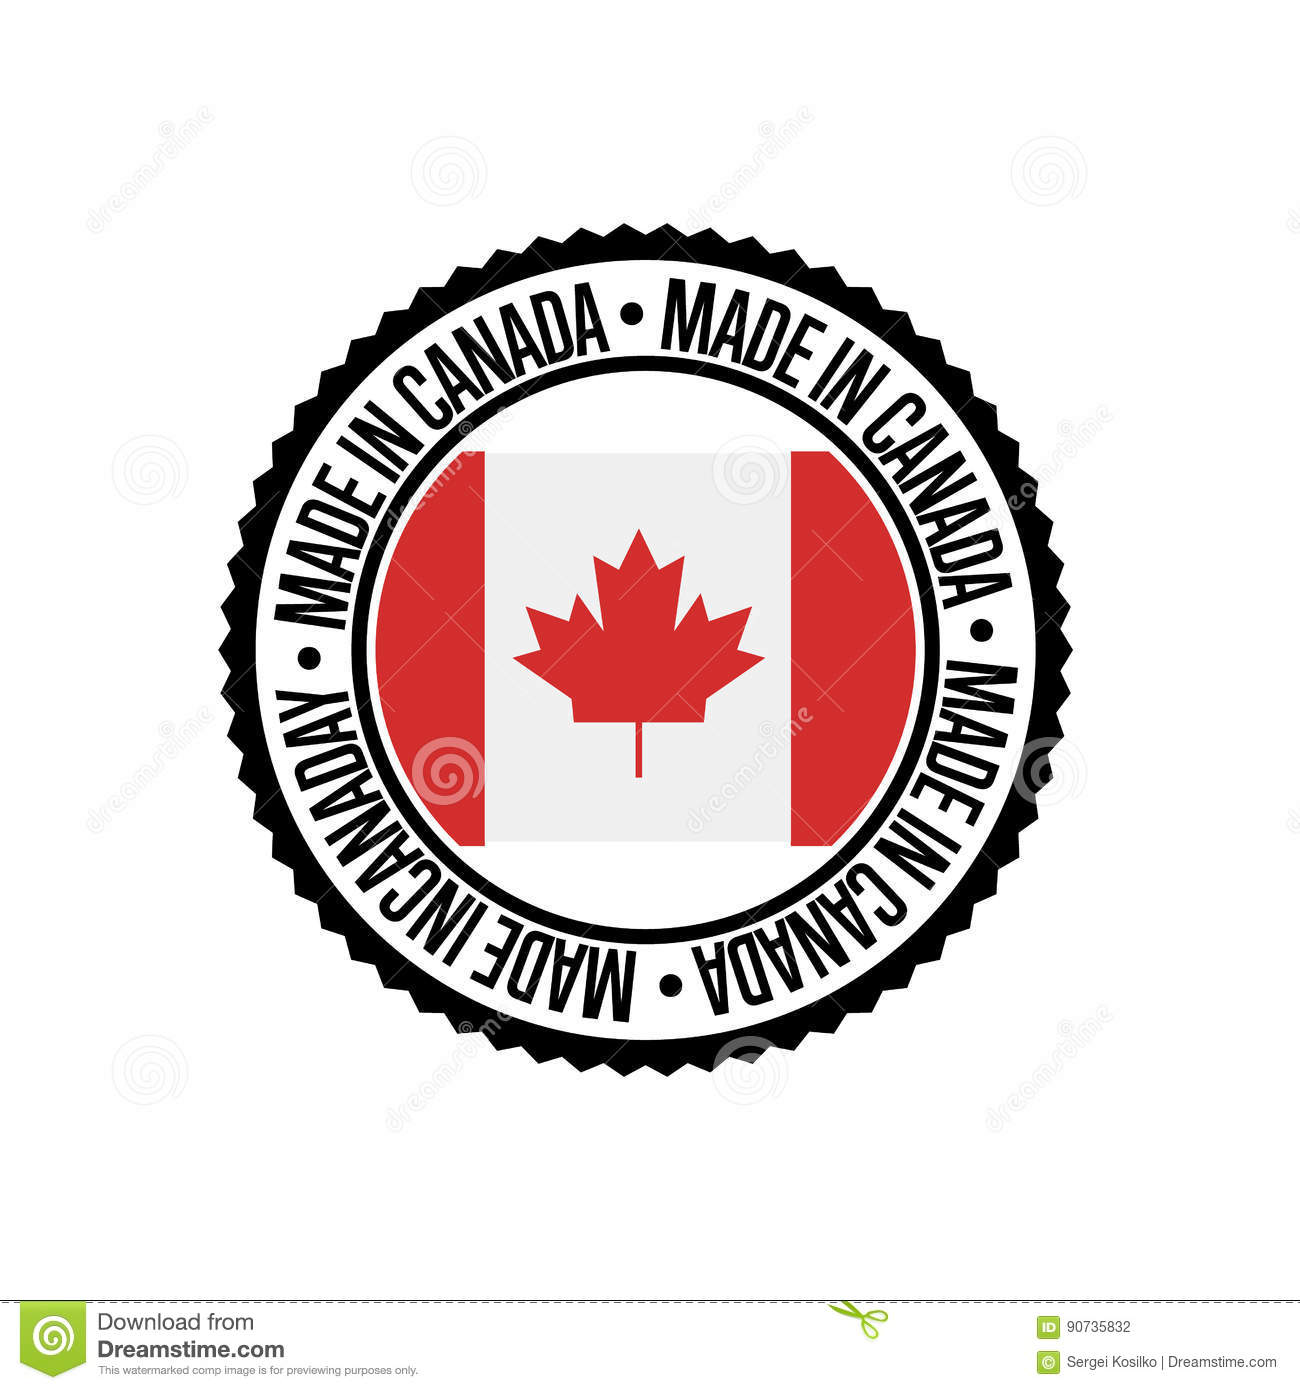 94ecea025e2 Made In Canada Round Rubber Stamp For Products Stock Vector ...